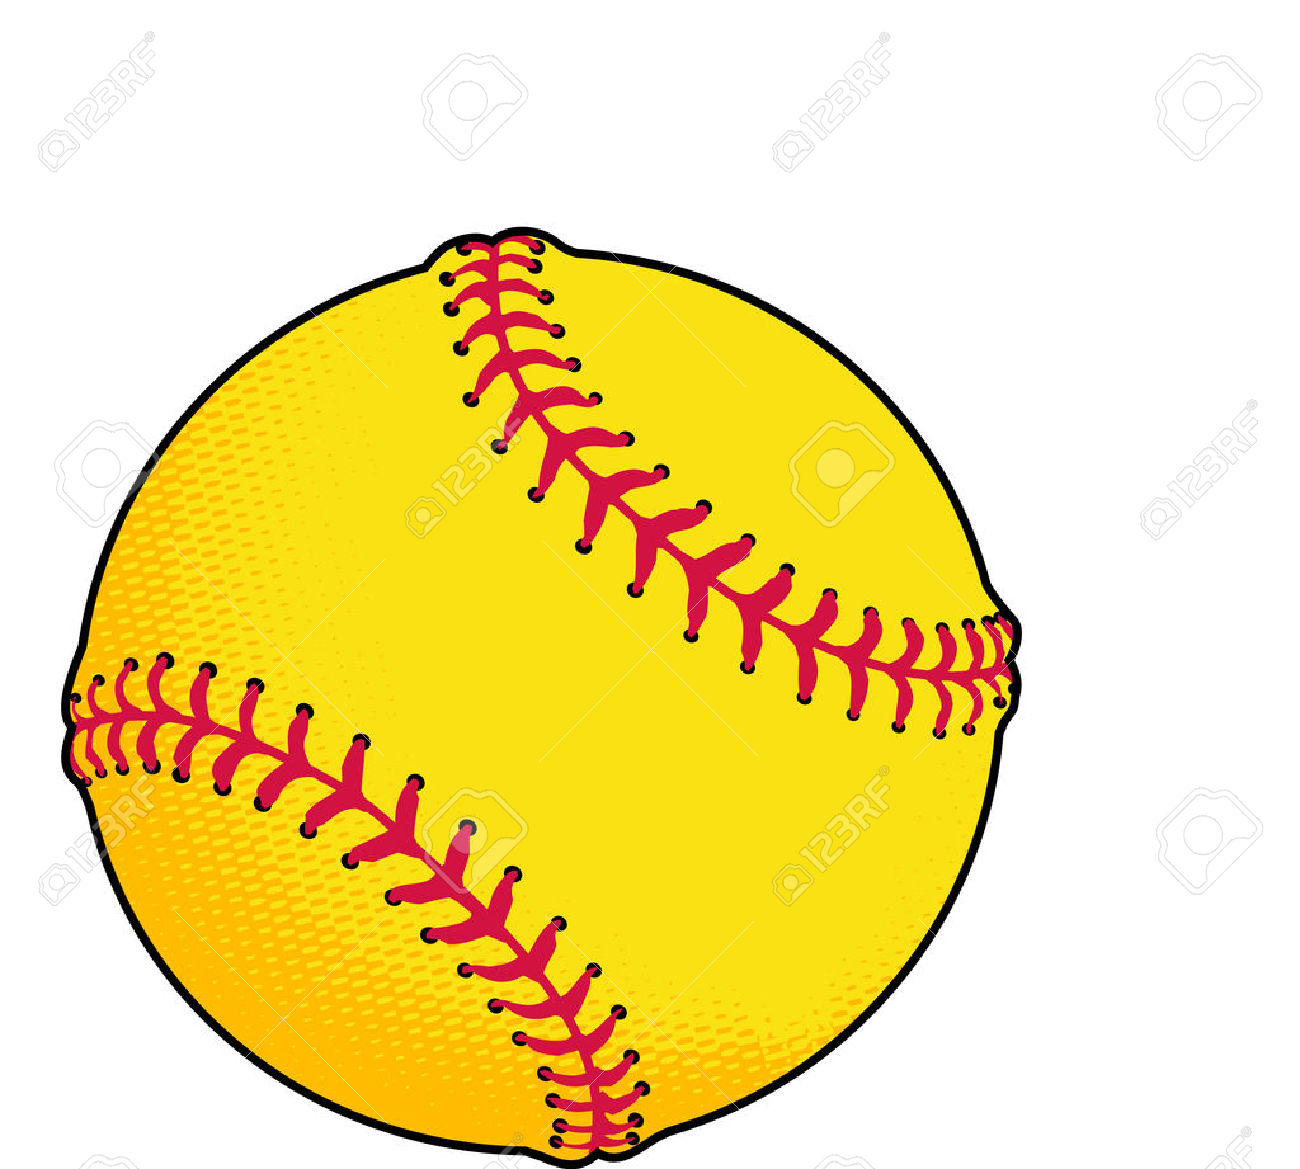 Softball vector. Free clipart download best